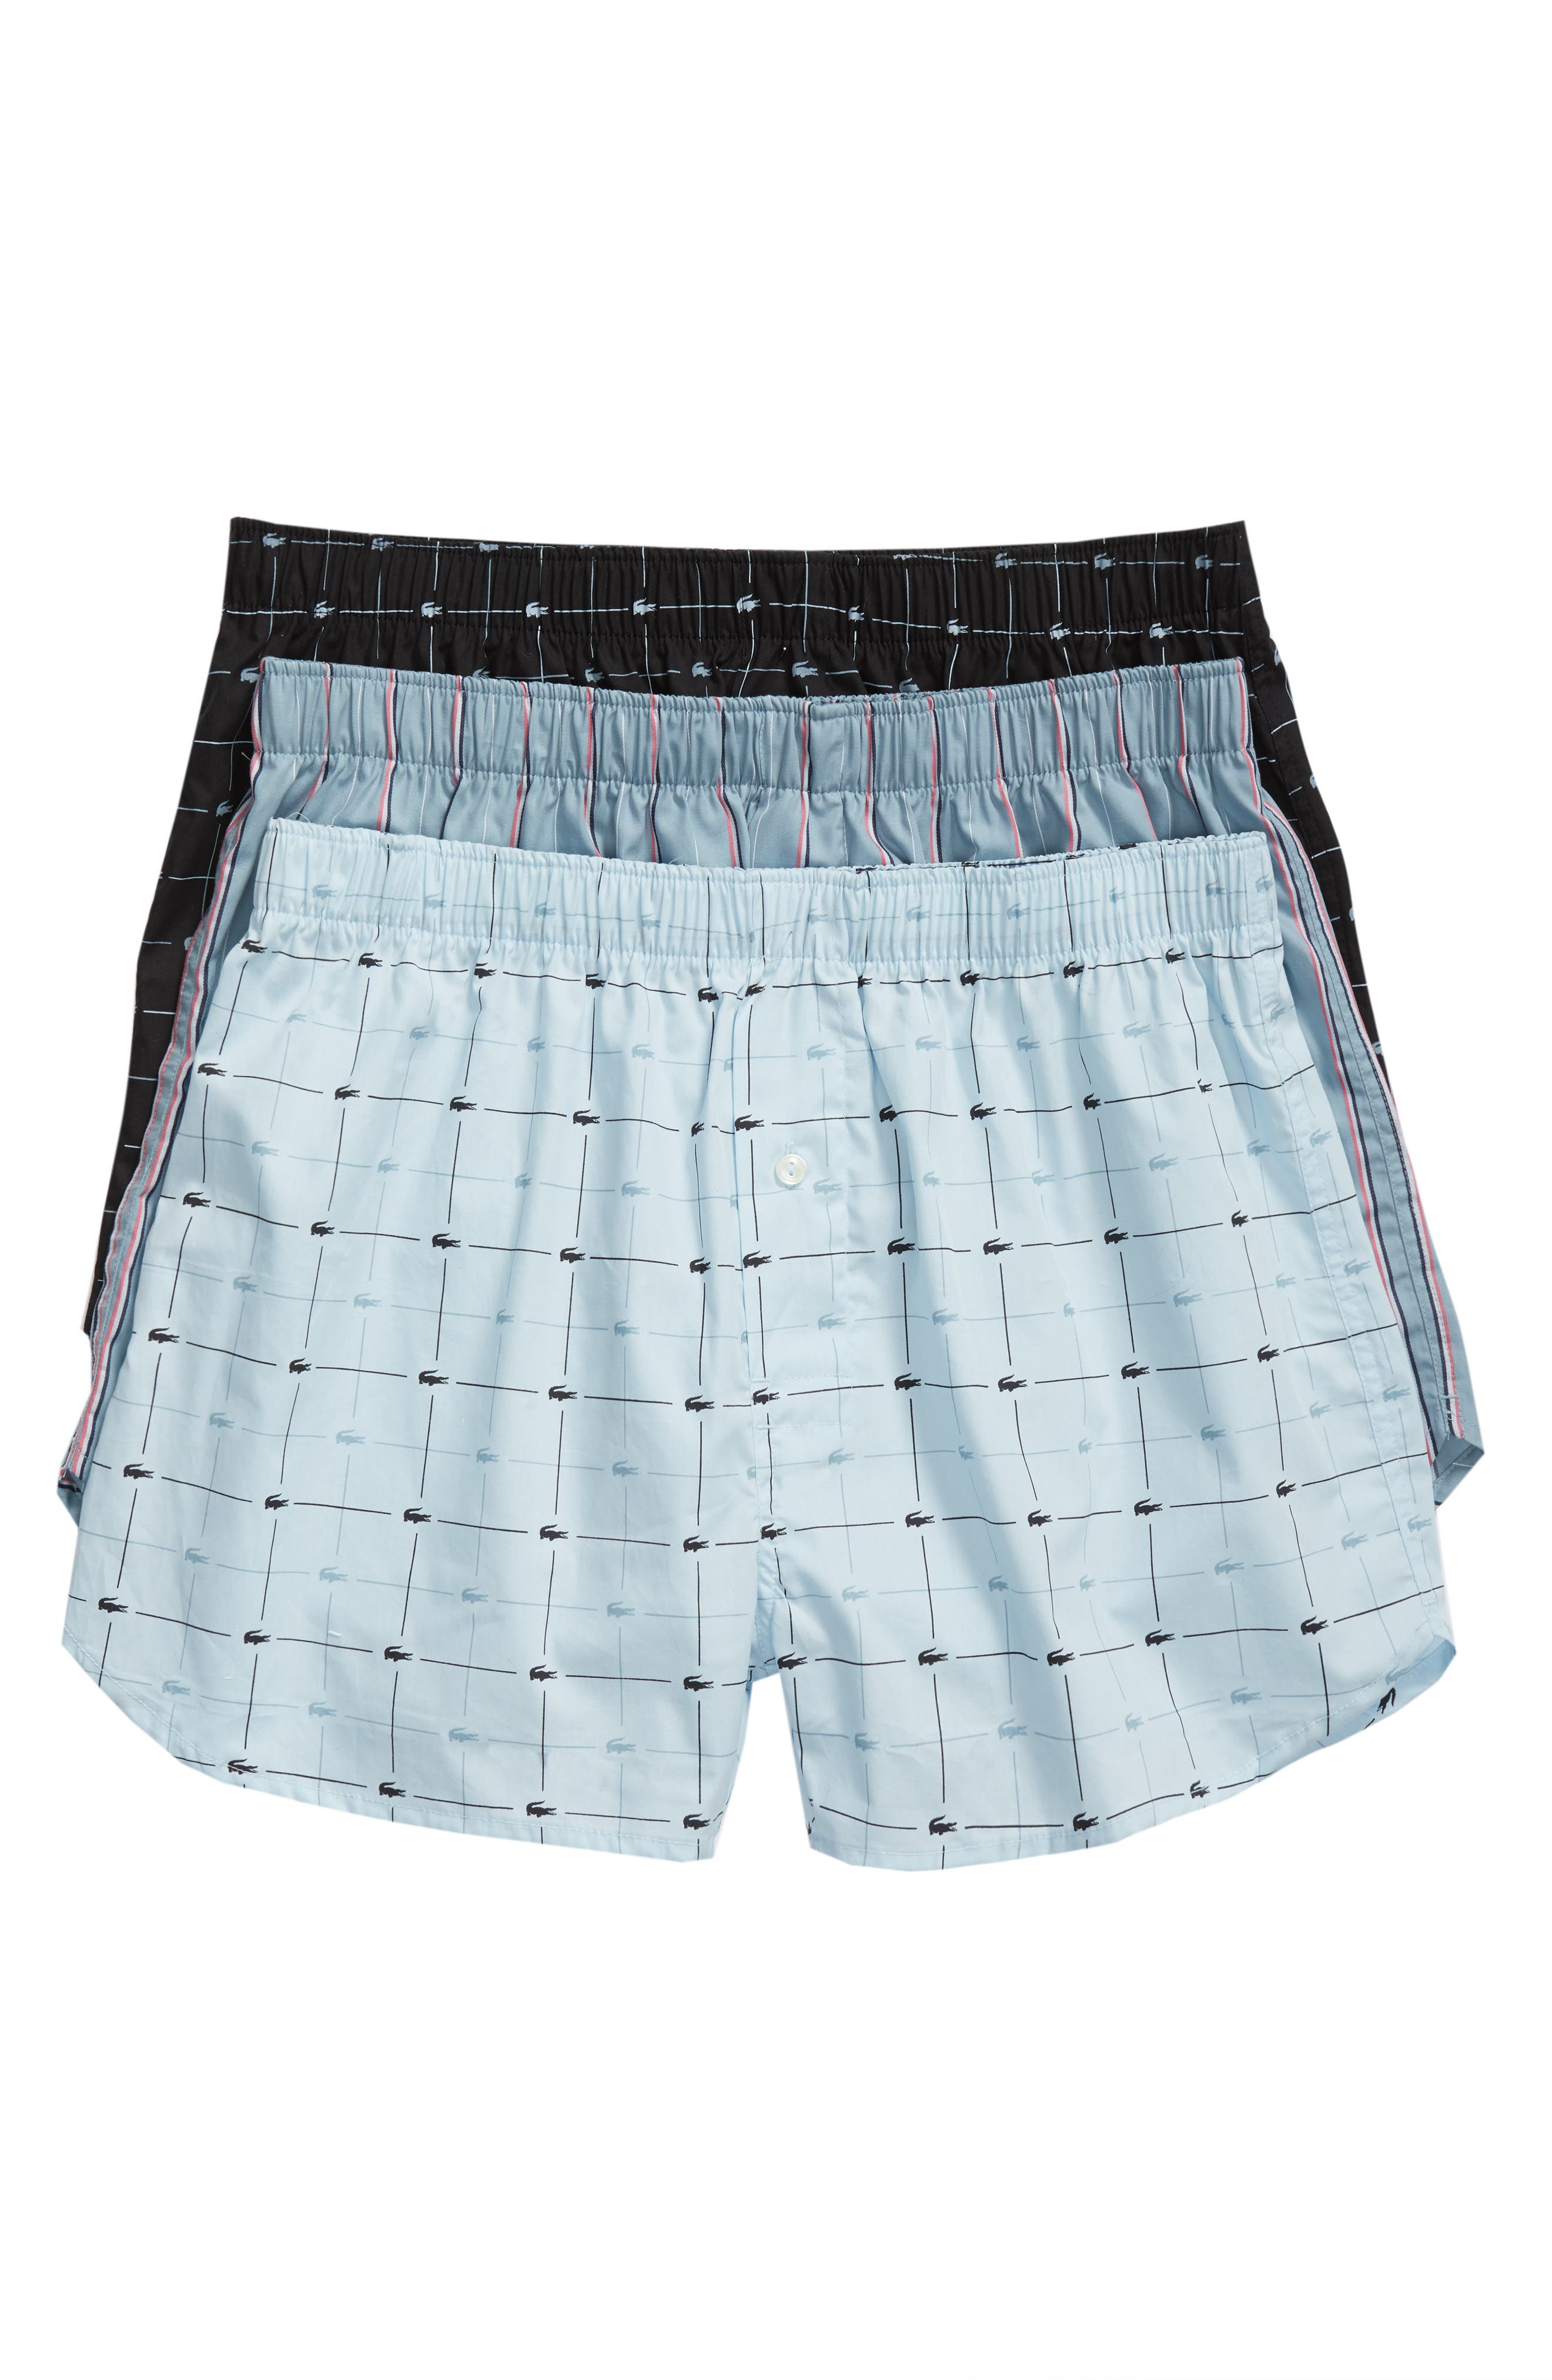 Lacoste 3-Pack Cotton Boxers